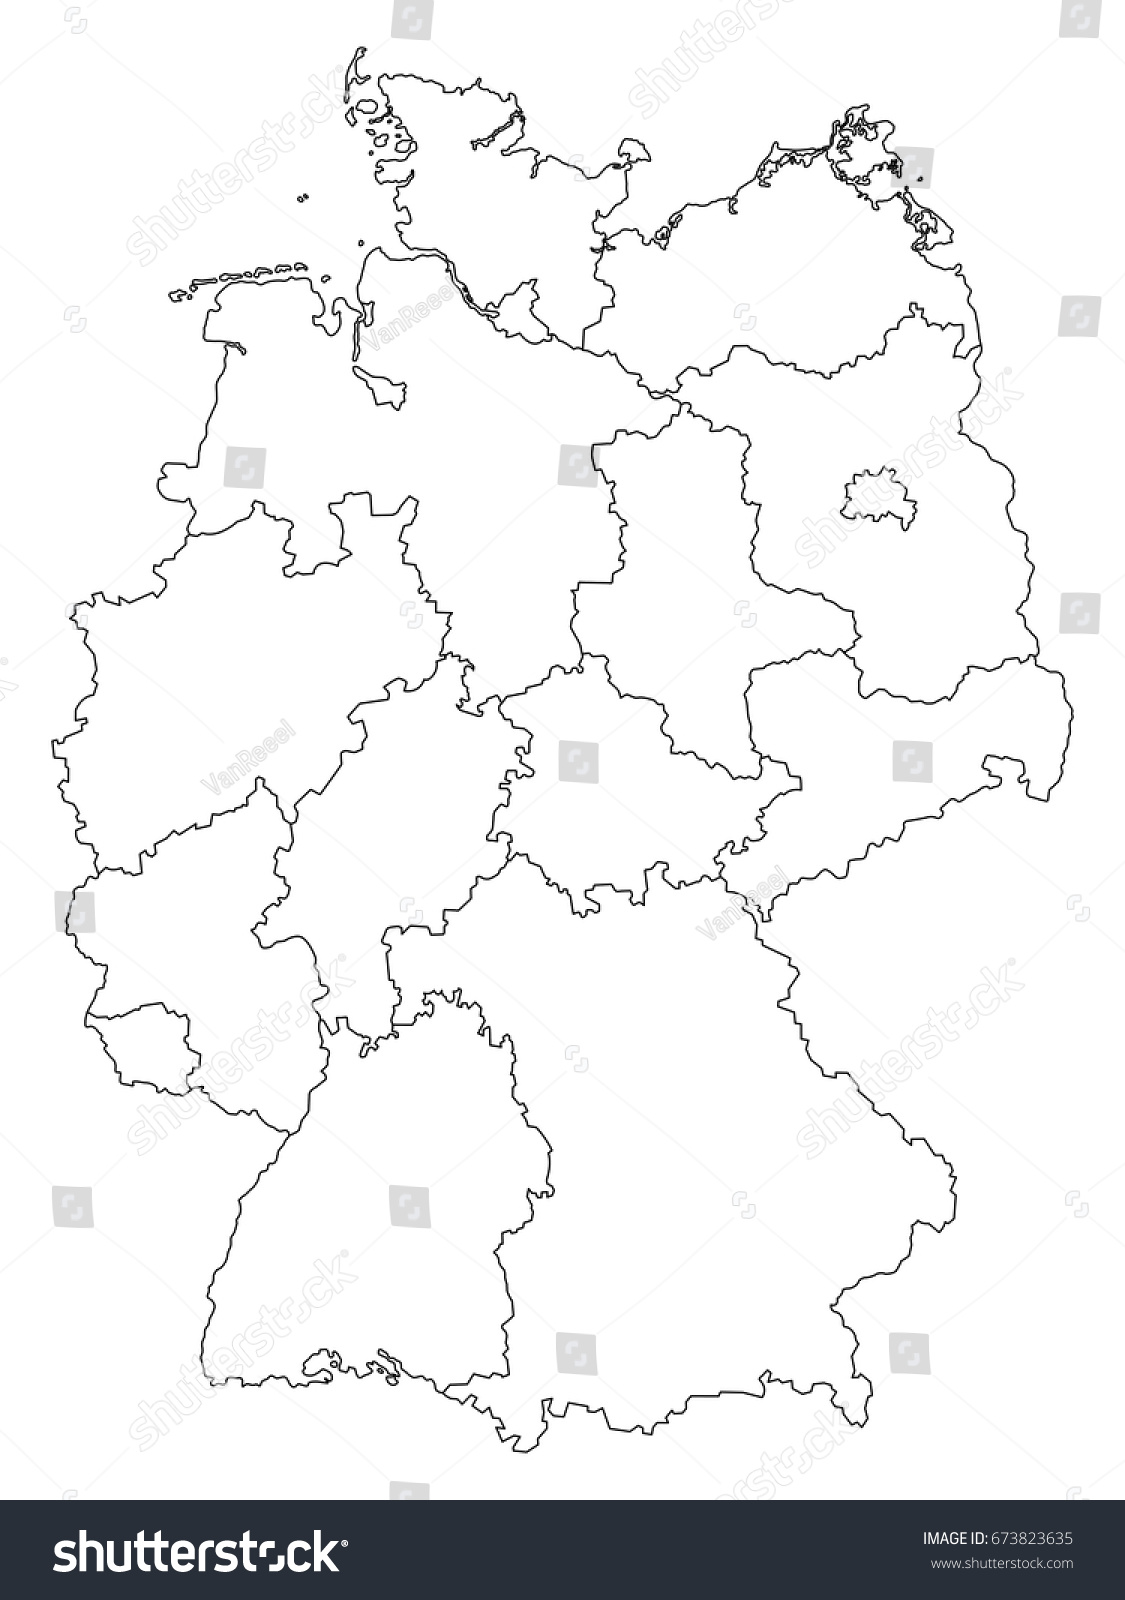 Germany outline map with federal states isolated on white background ...